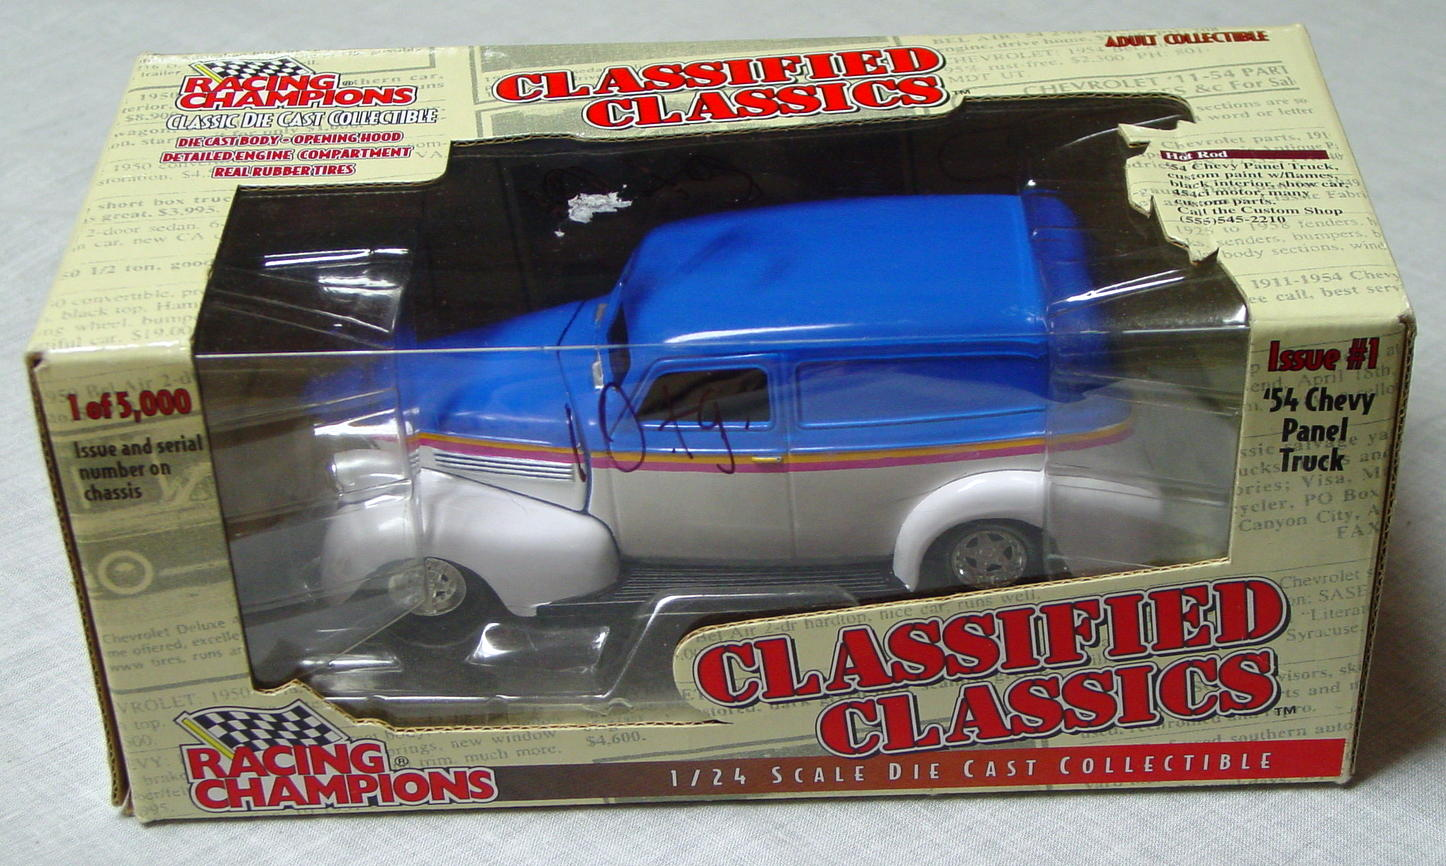 1_24 Scale - RC Class. Classics 54 Chevy Panel Truck C9box 1/5000